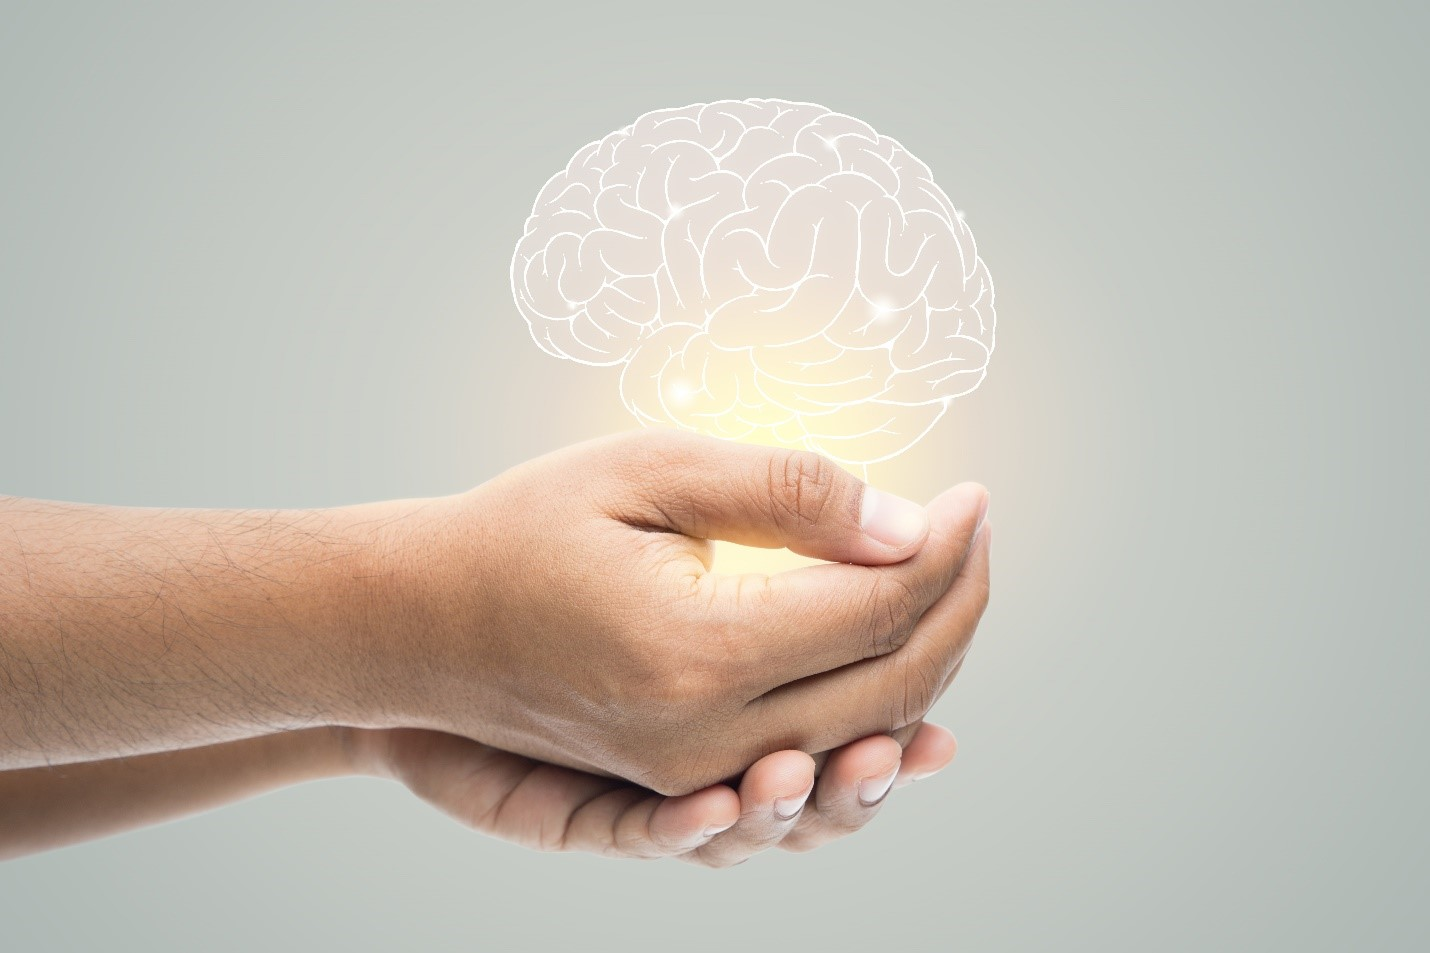 5 Proven Ways to Improve Your Memory